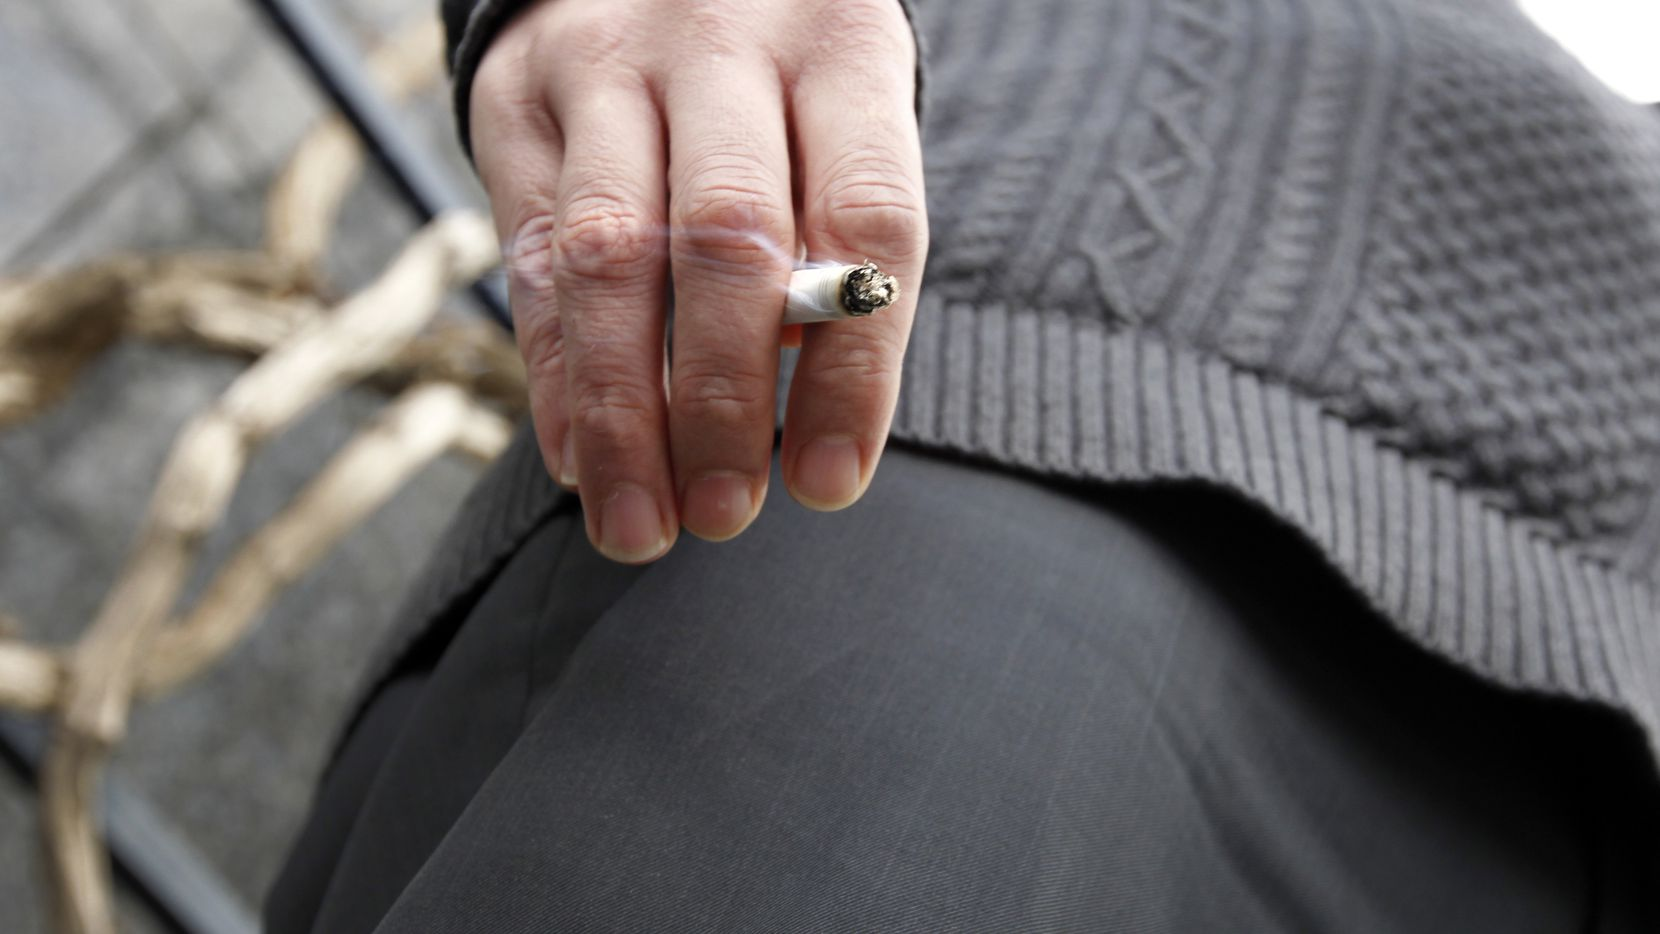 Nathan Morgan smokes a cigarette during a break from work outside the Renaissance Tower in downtown Dallas. (File 2013/The Dallas Morning News )